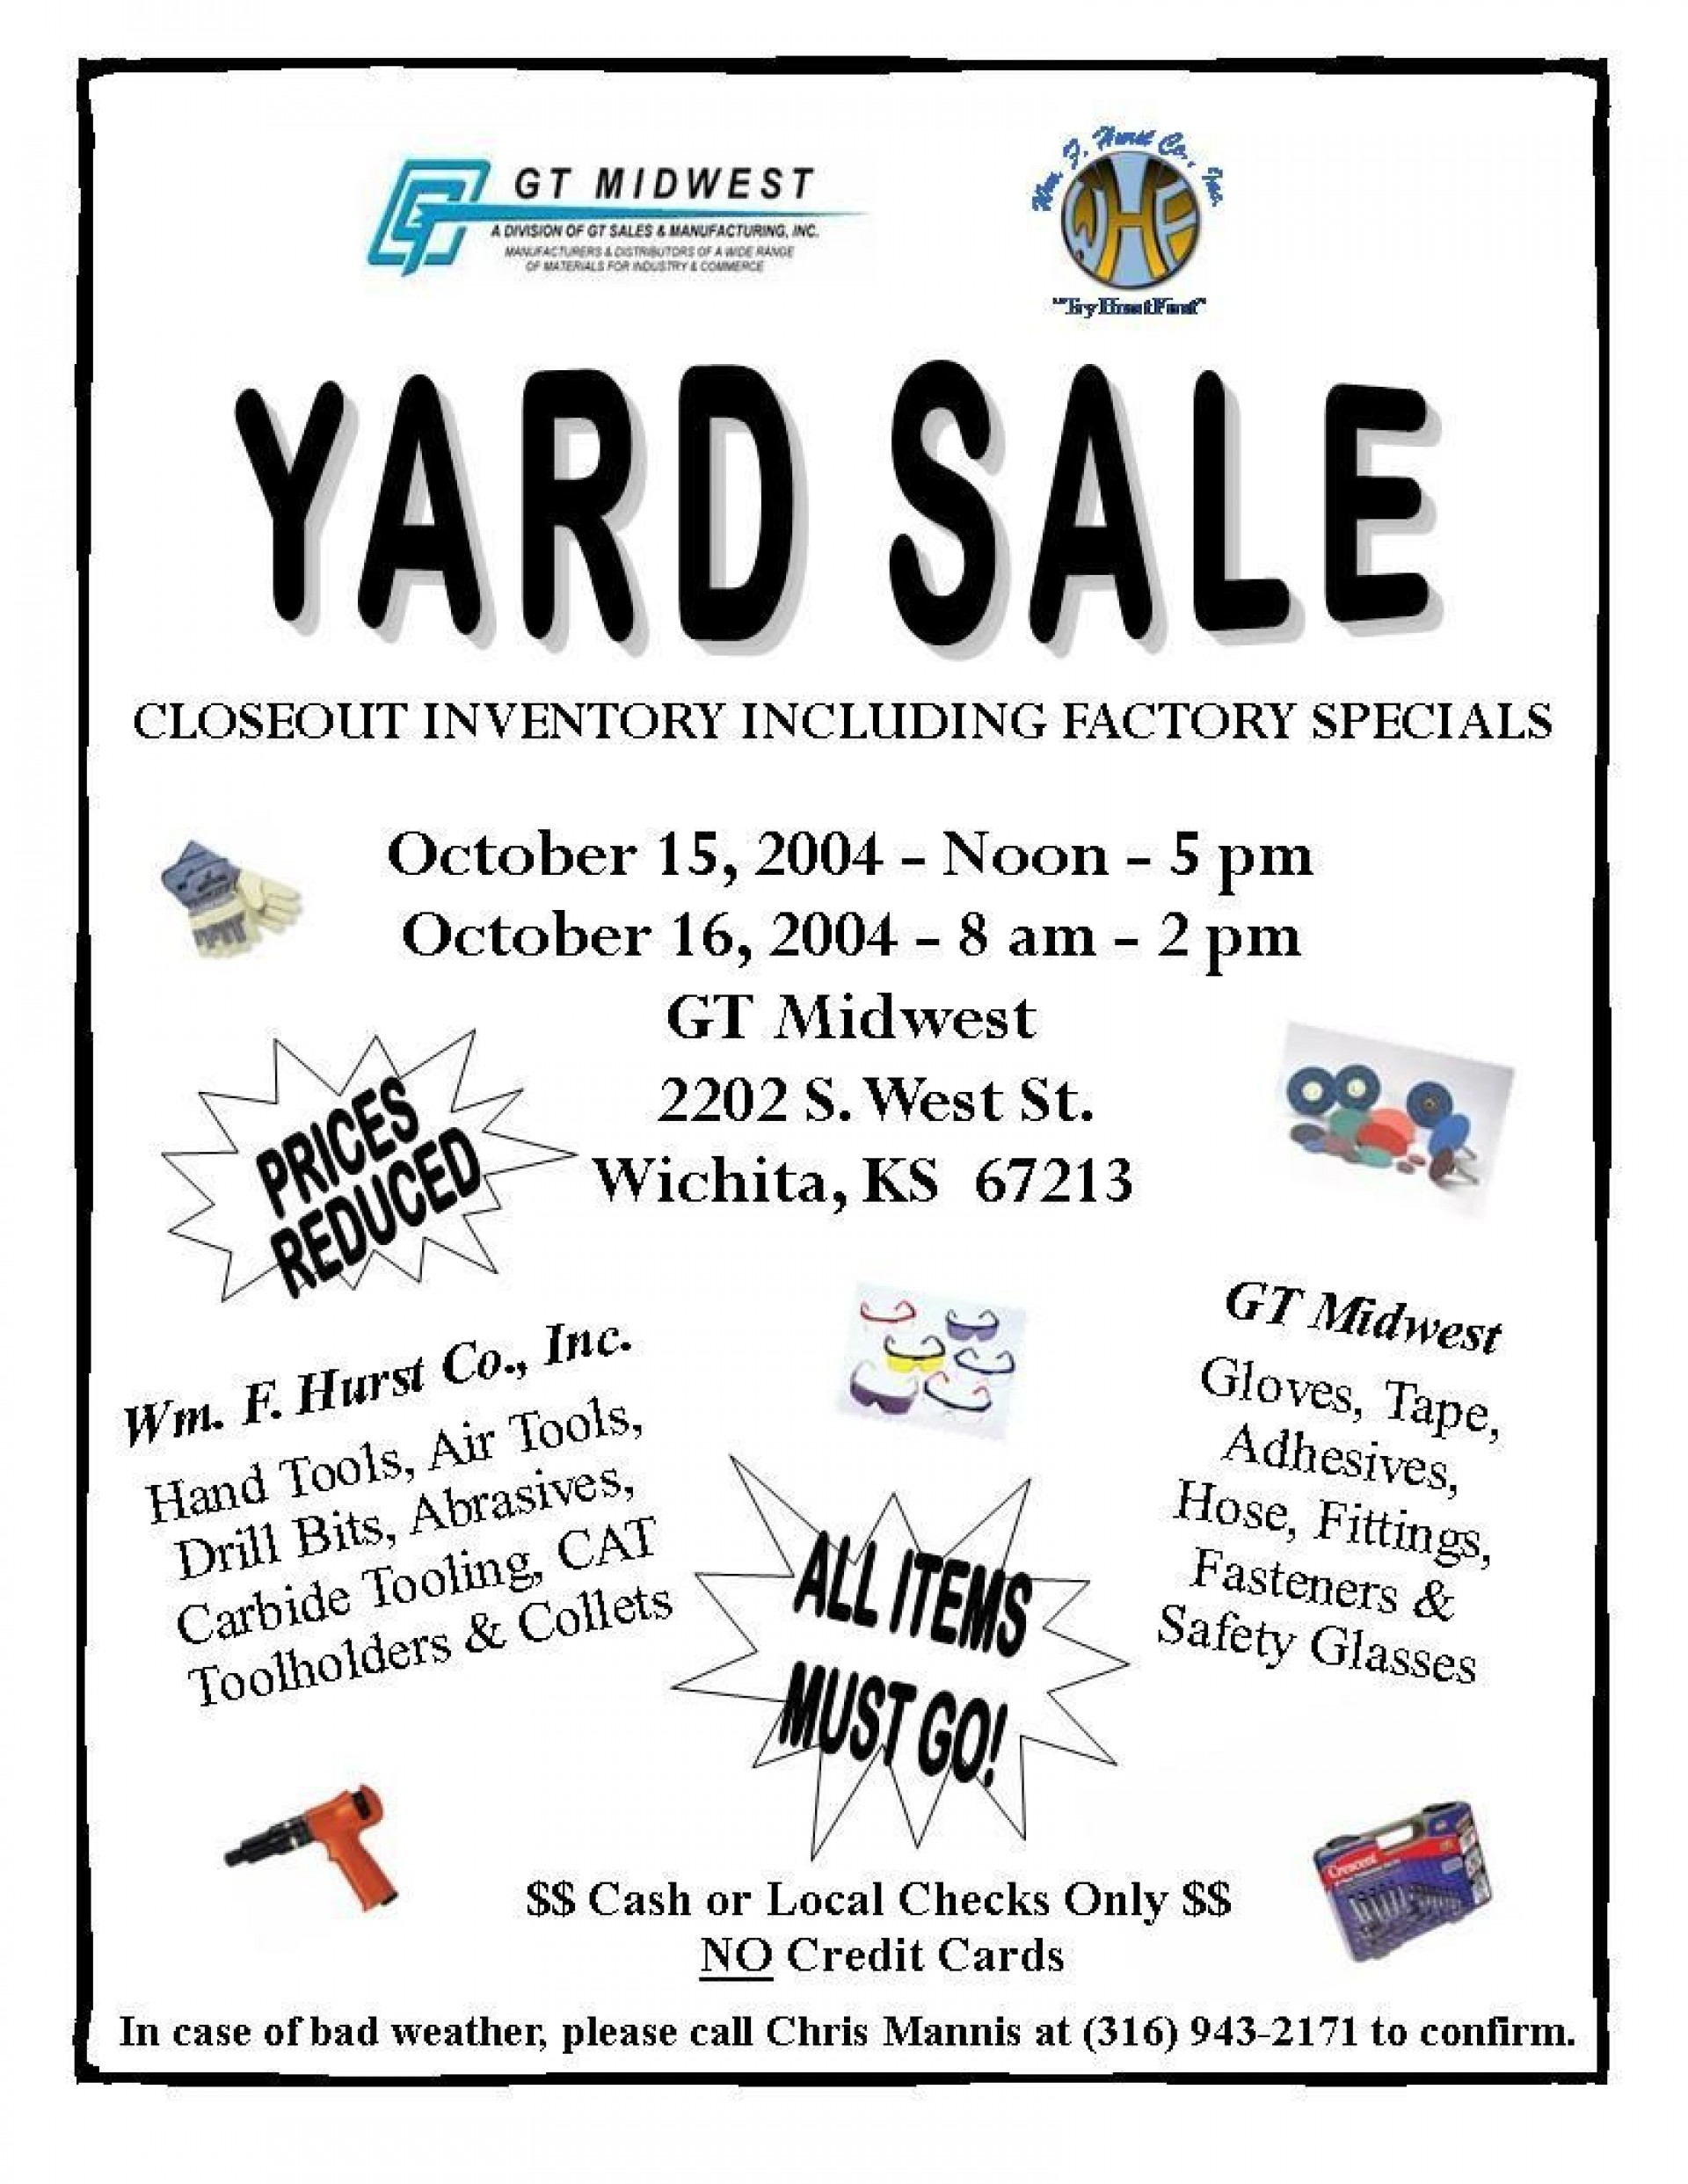 002 Top Yard Sale Flyer Template Sample  Ad Microsoft Word Garage Free1920